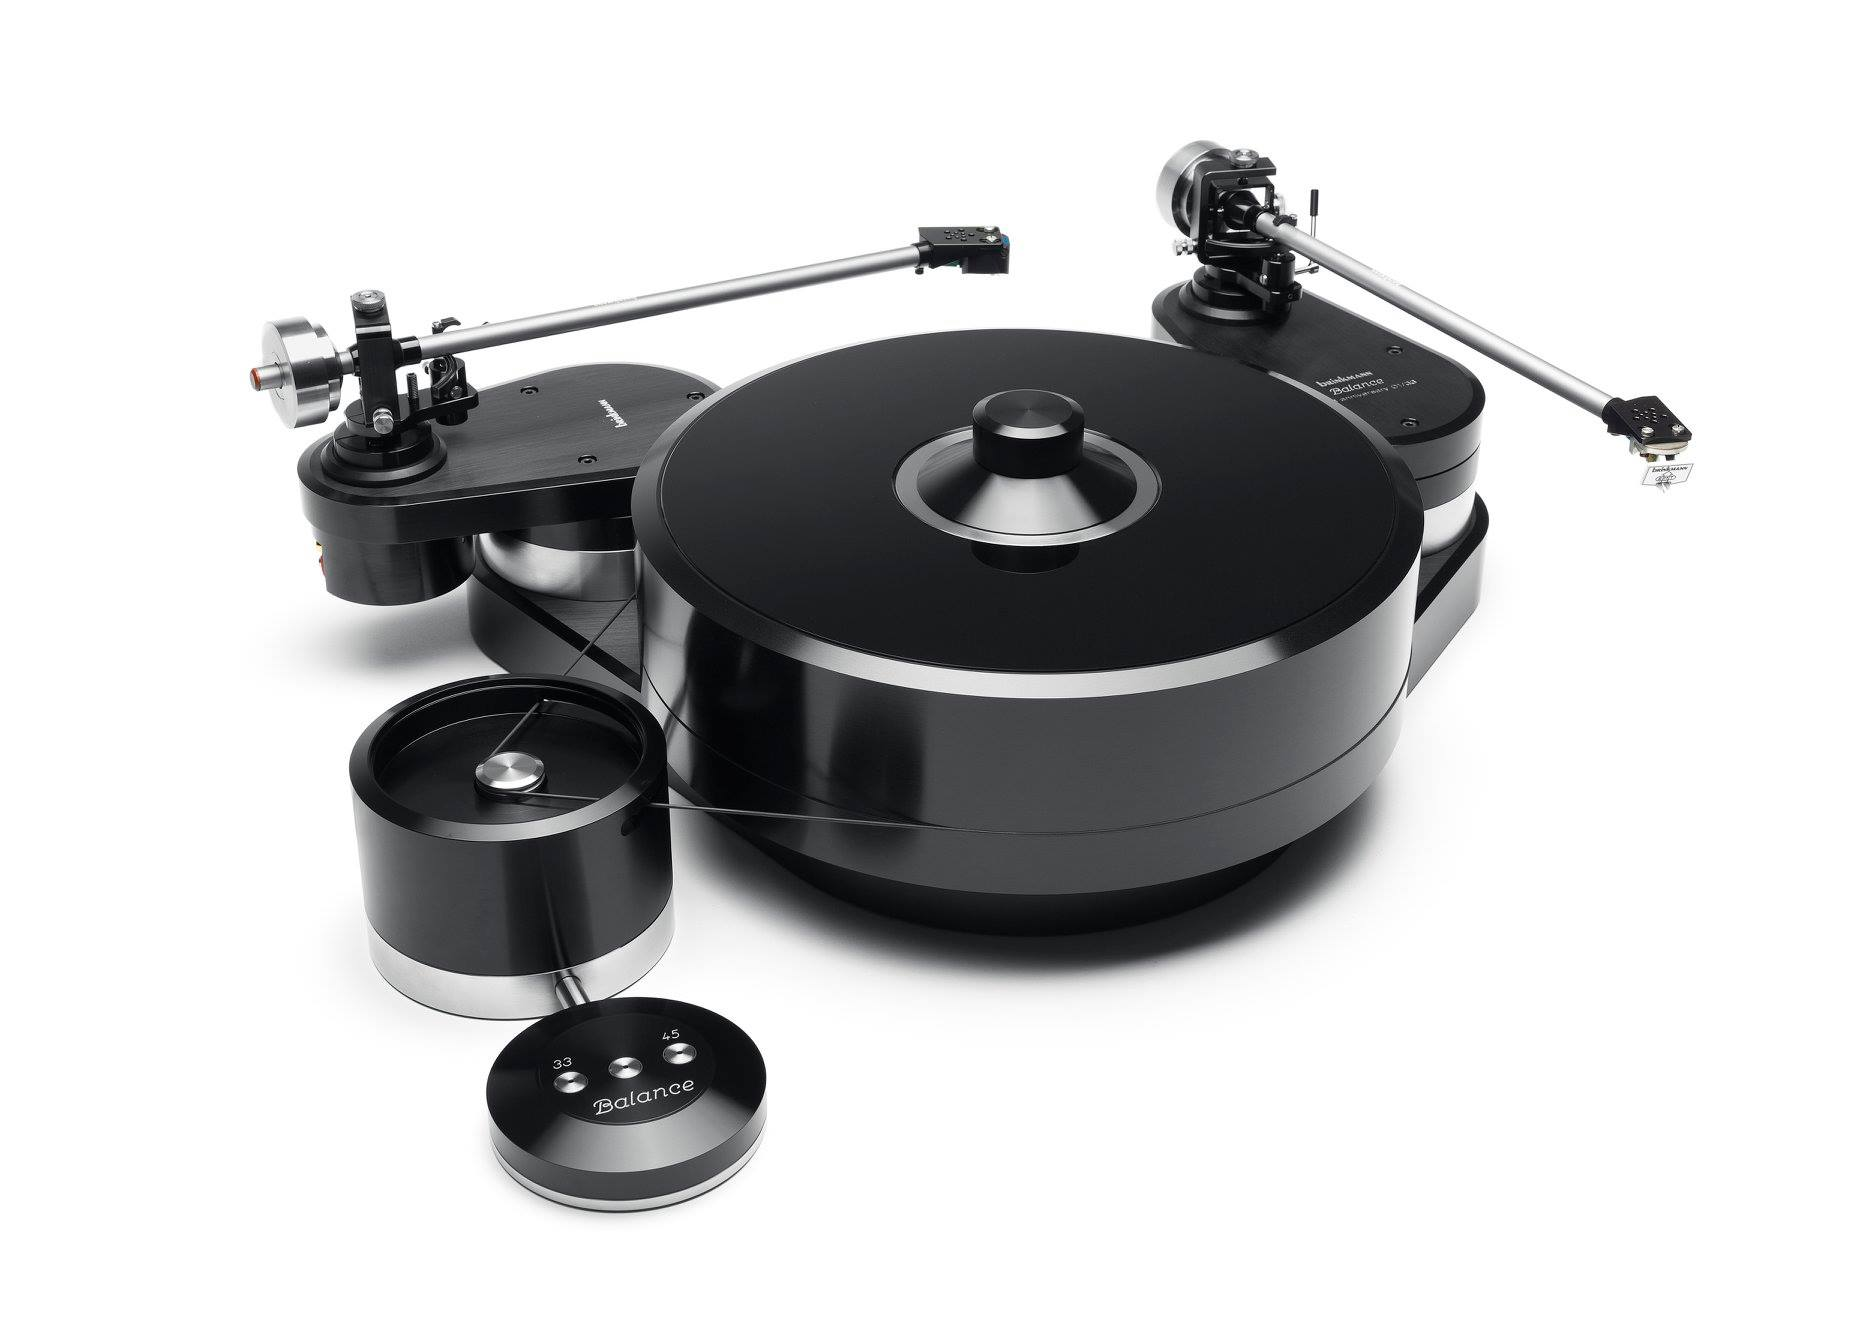 2-arm Turntable »Balance« 33rd Anniversary Edition (limited to 33)